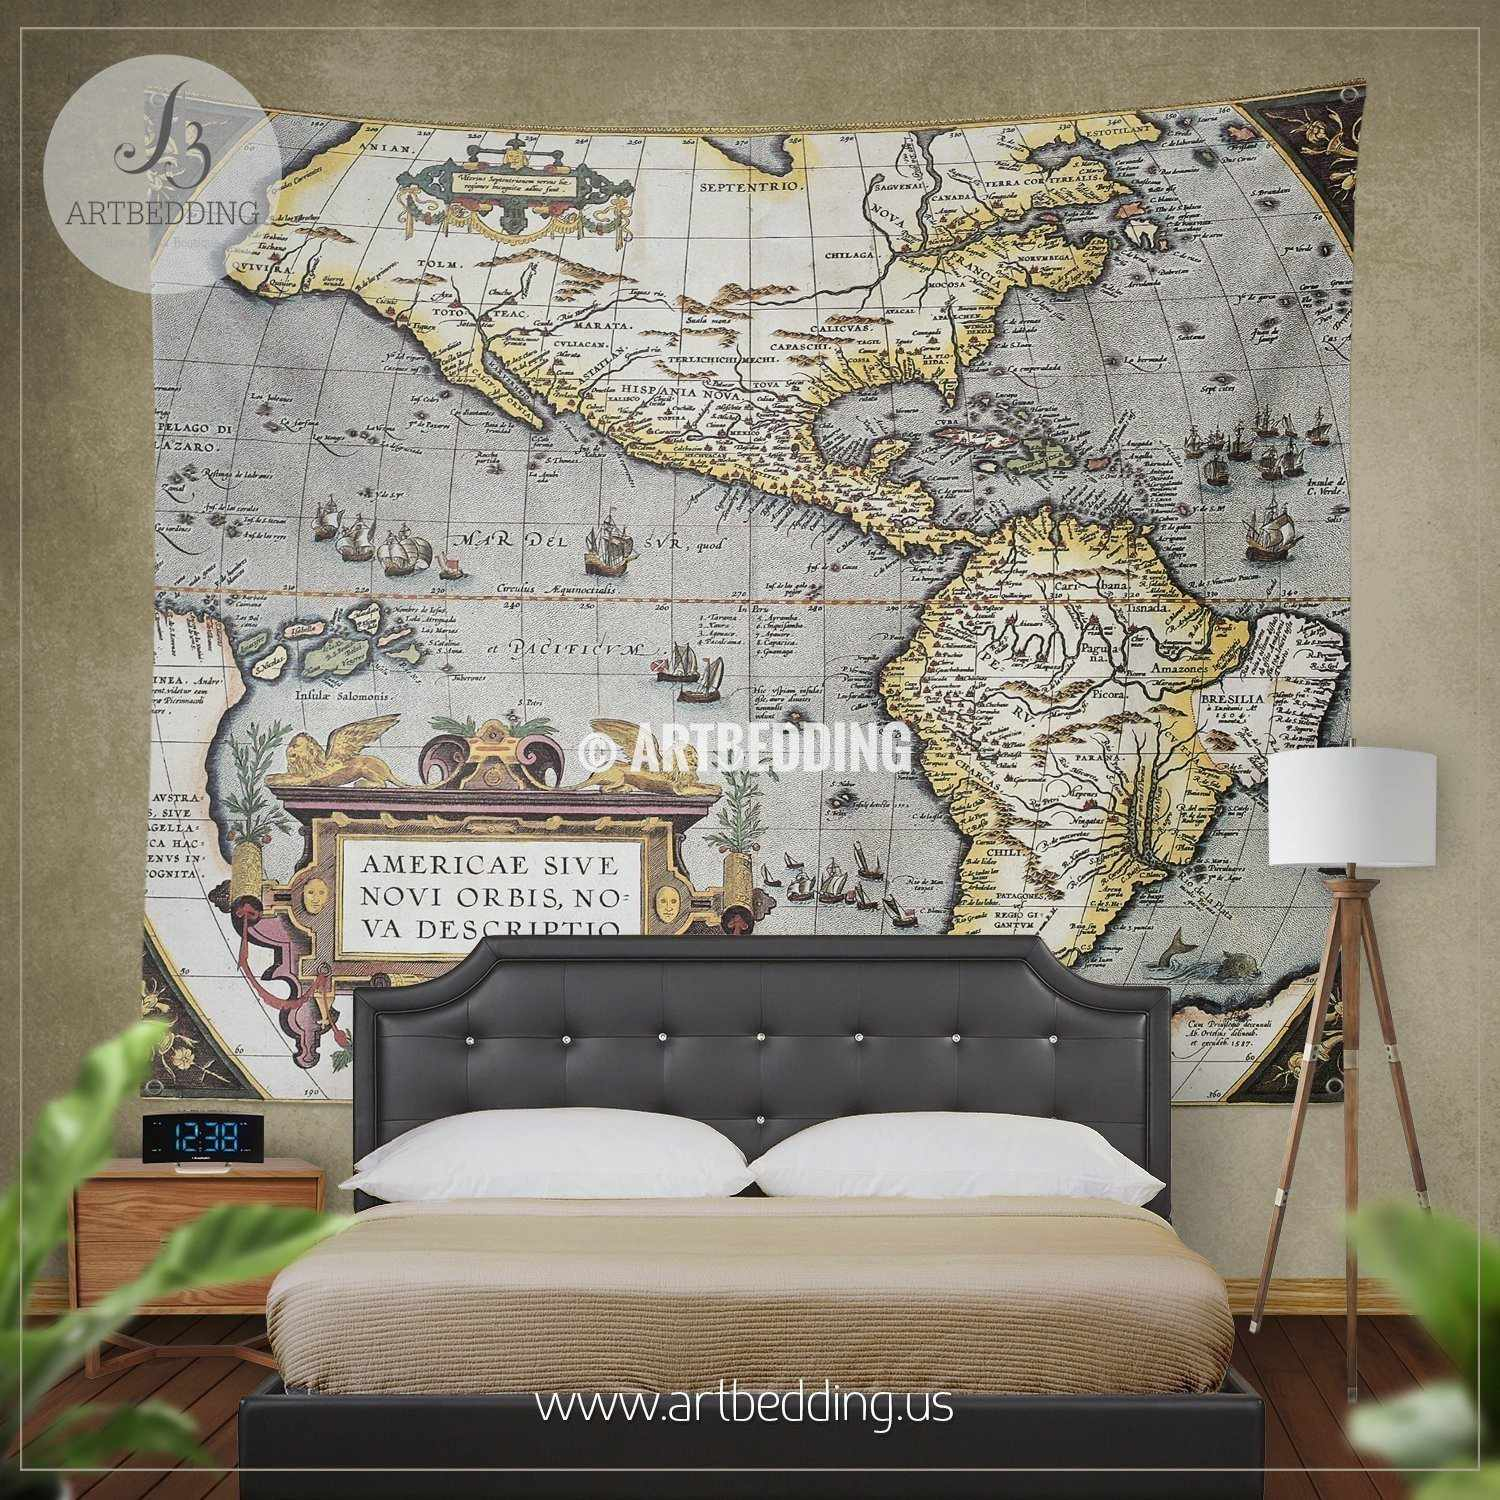 America old map bedding vintage old world map duvet cover set america old map bedding vintage atlas 1570 old america map duvet cover set antique gumiabroncs Gallery